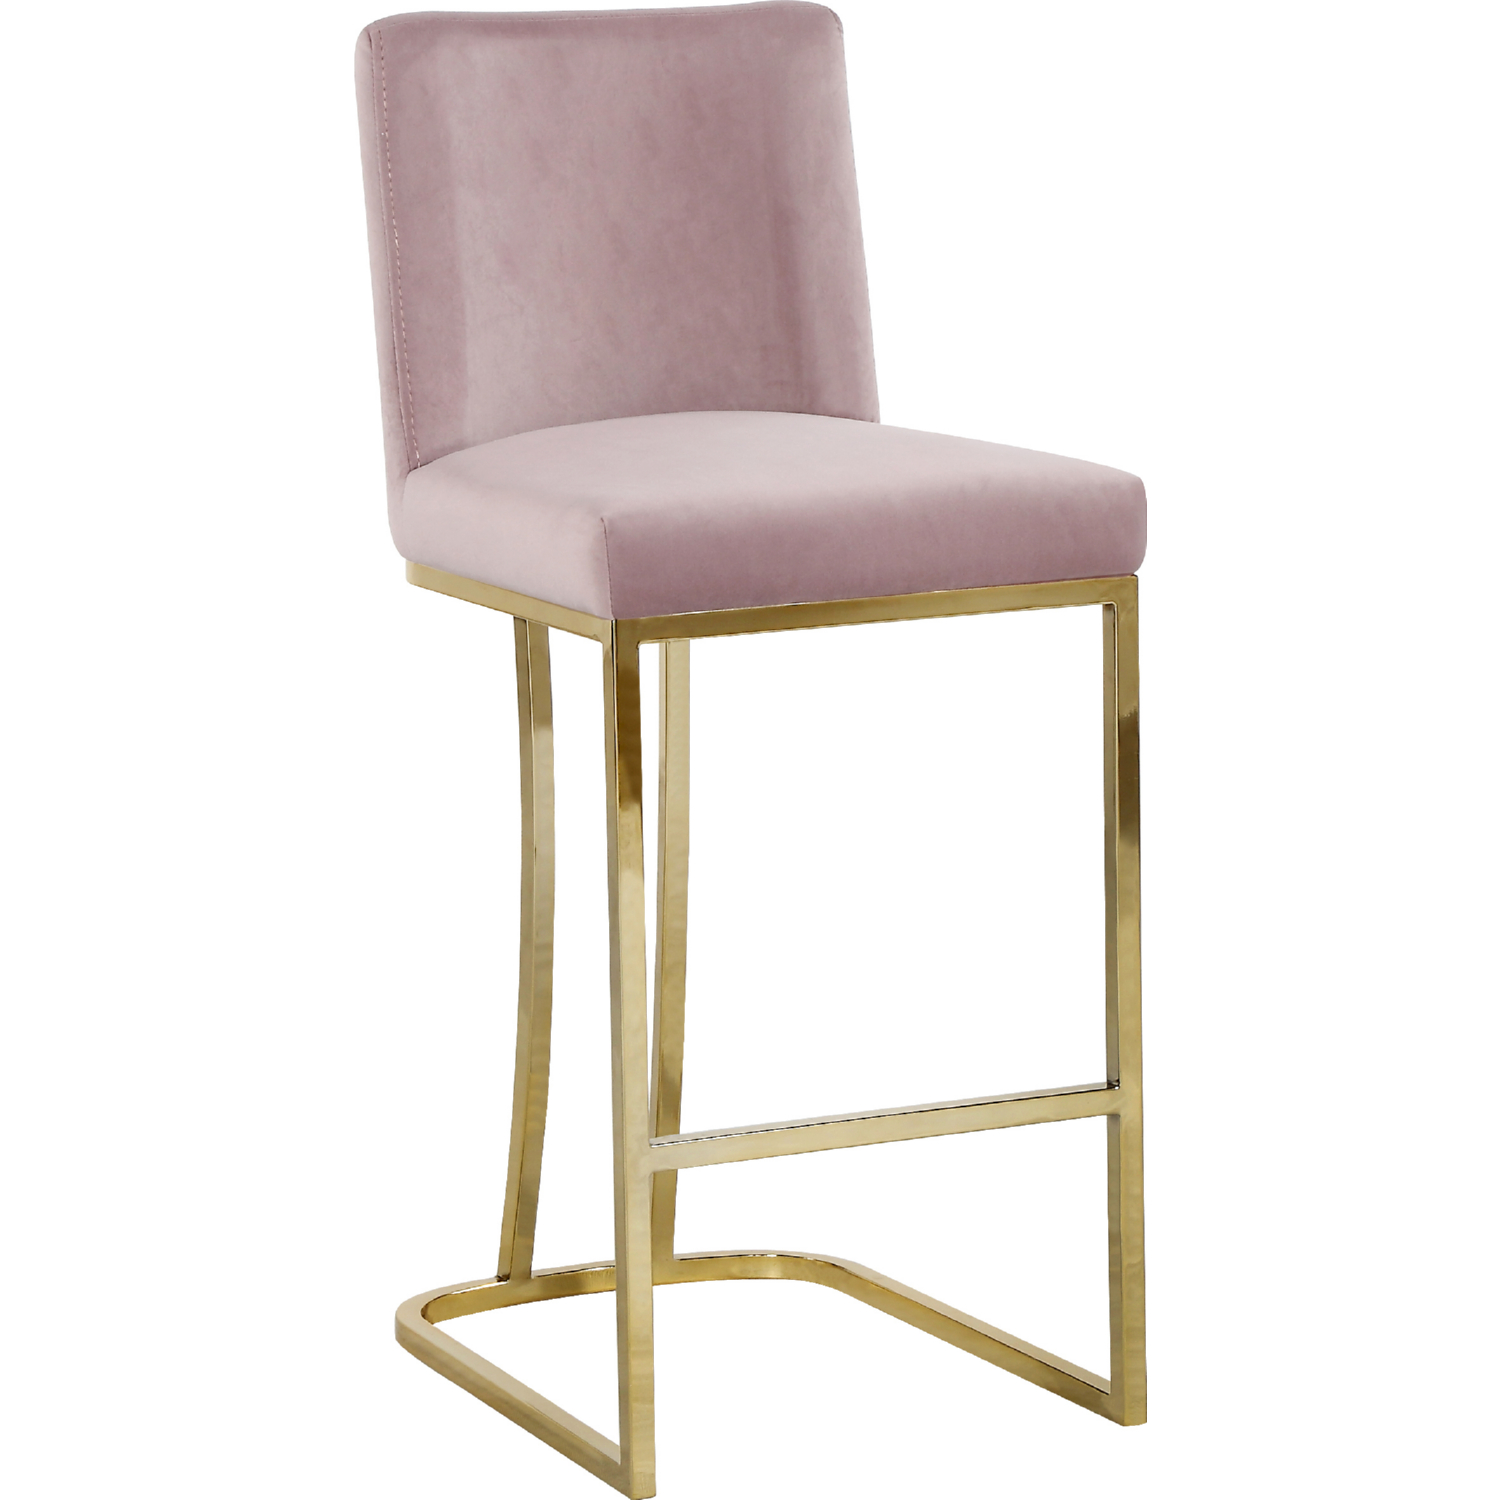 Cool Heidi Counter Stool In Pink Velvet On Gold Base By Meridian Furniture Machost Co Dining Chair Design Ideas Machostcouk